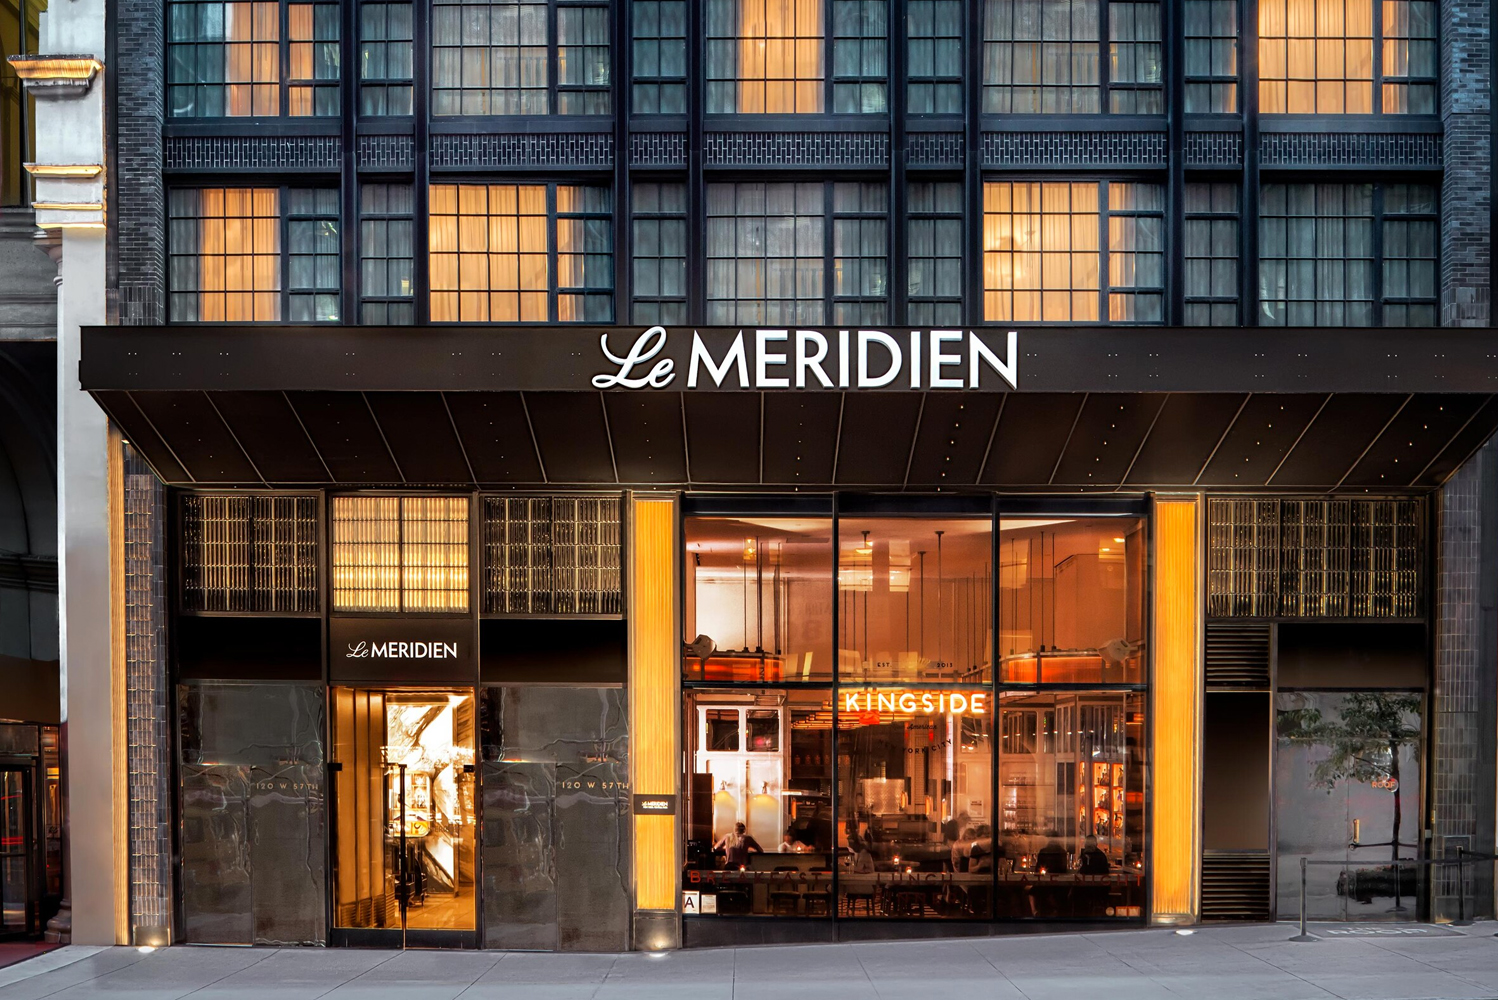 Paris-born Le Méridien Hotels & Resorts, part of Marriott International, along with Arden Group, opened Le Méridien New York, Central Park.